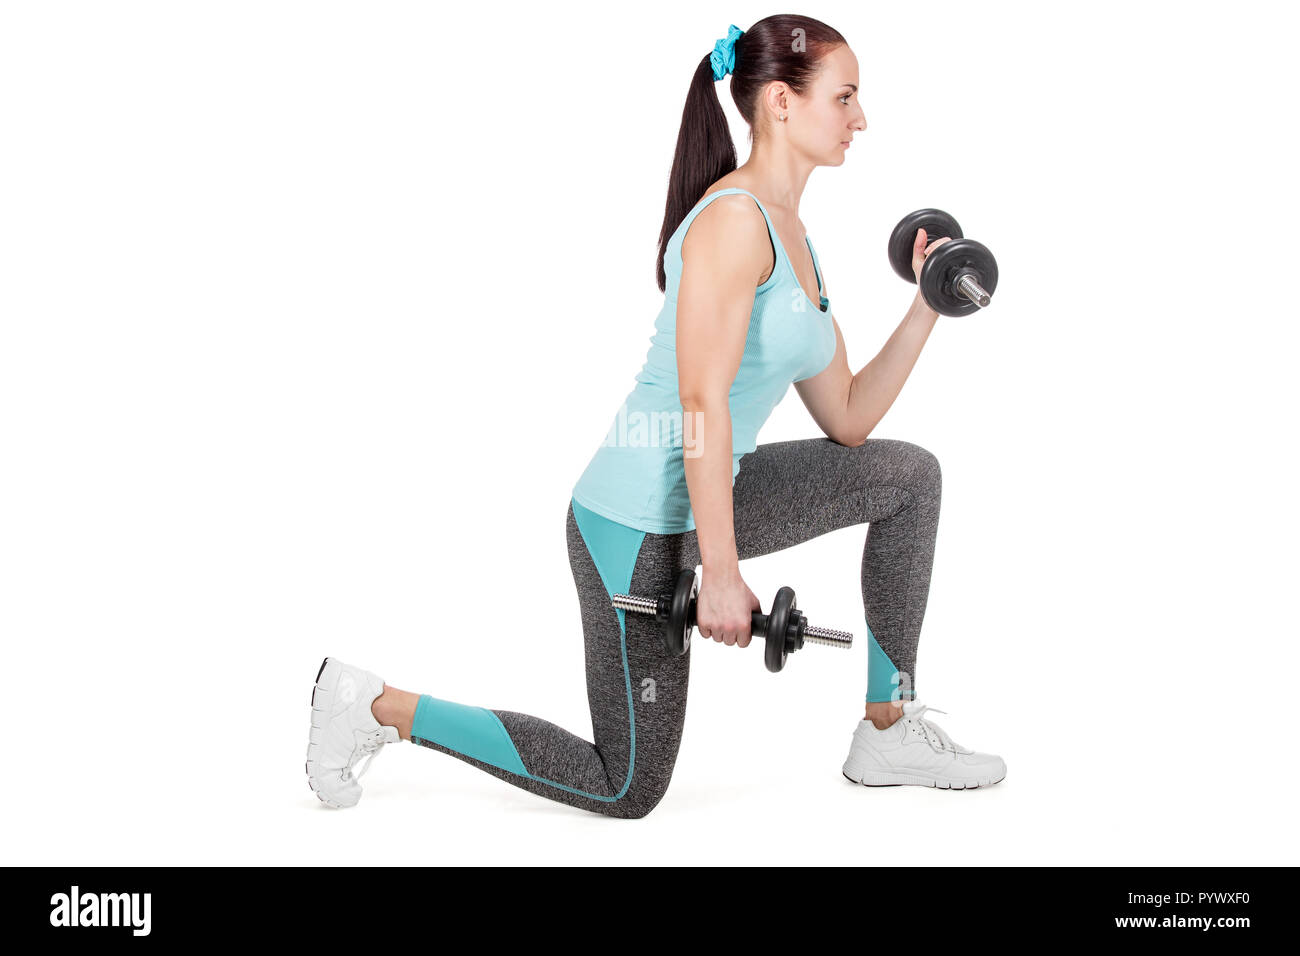 Fitness sports woman working out with dumbbells - Stock Image